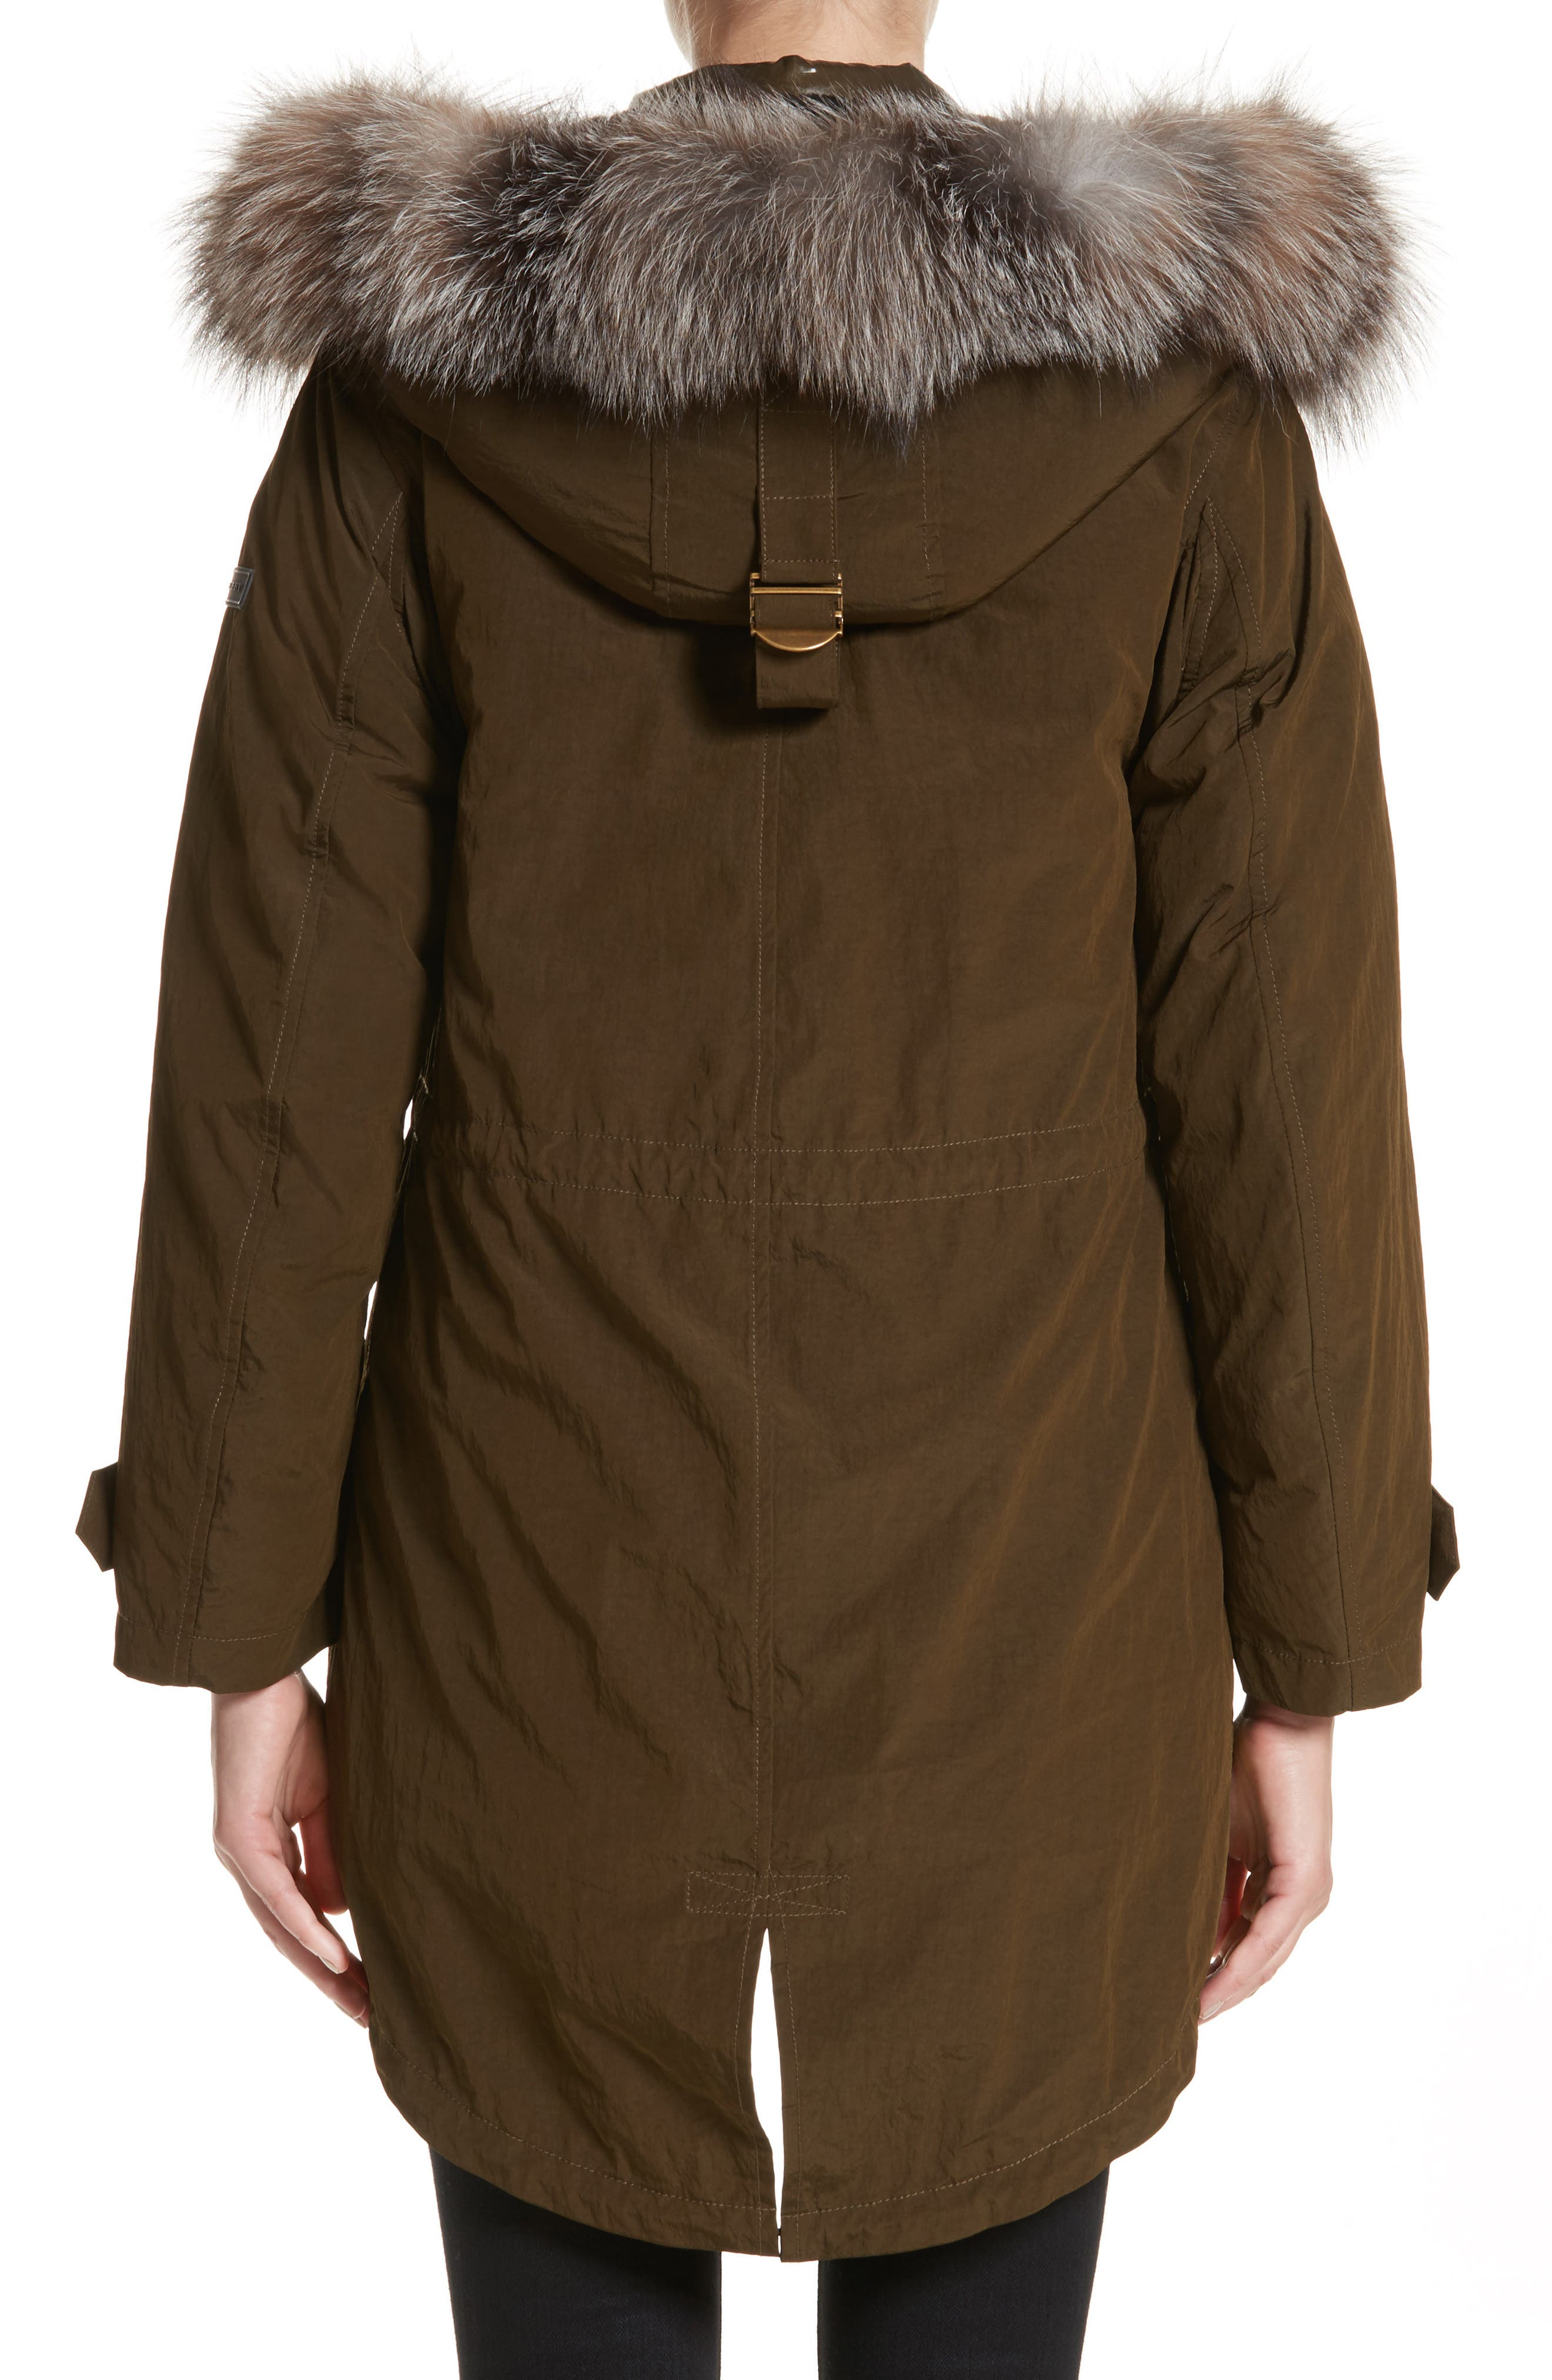 Ramsford 3-in-1 Hooded Parka with Genuine Fox Fur & Genuine Shearling Trim,                             Alternate thumbnail 3, color,                             301